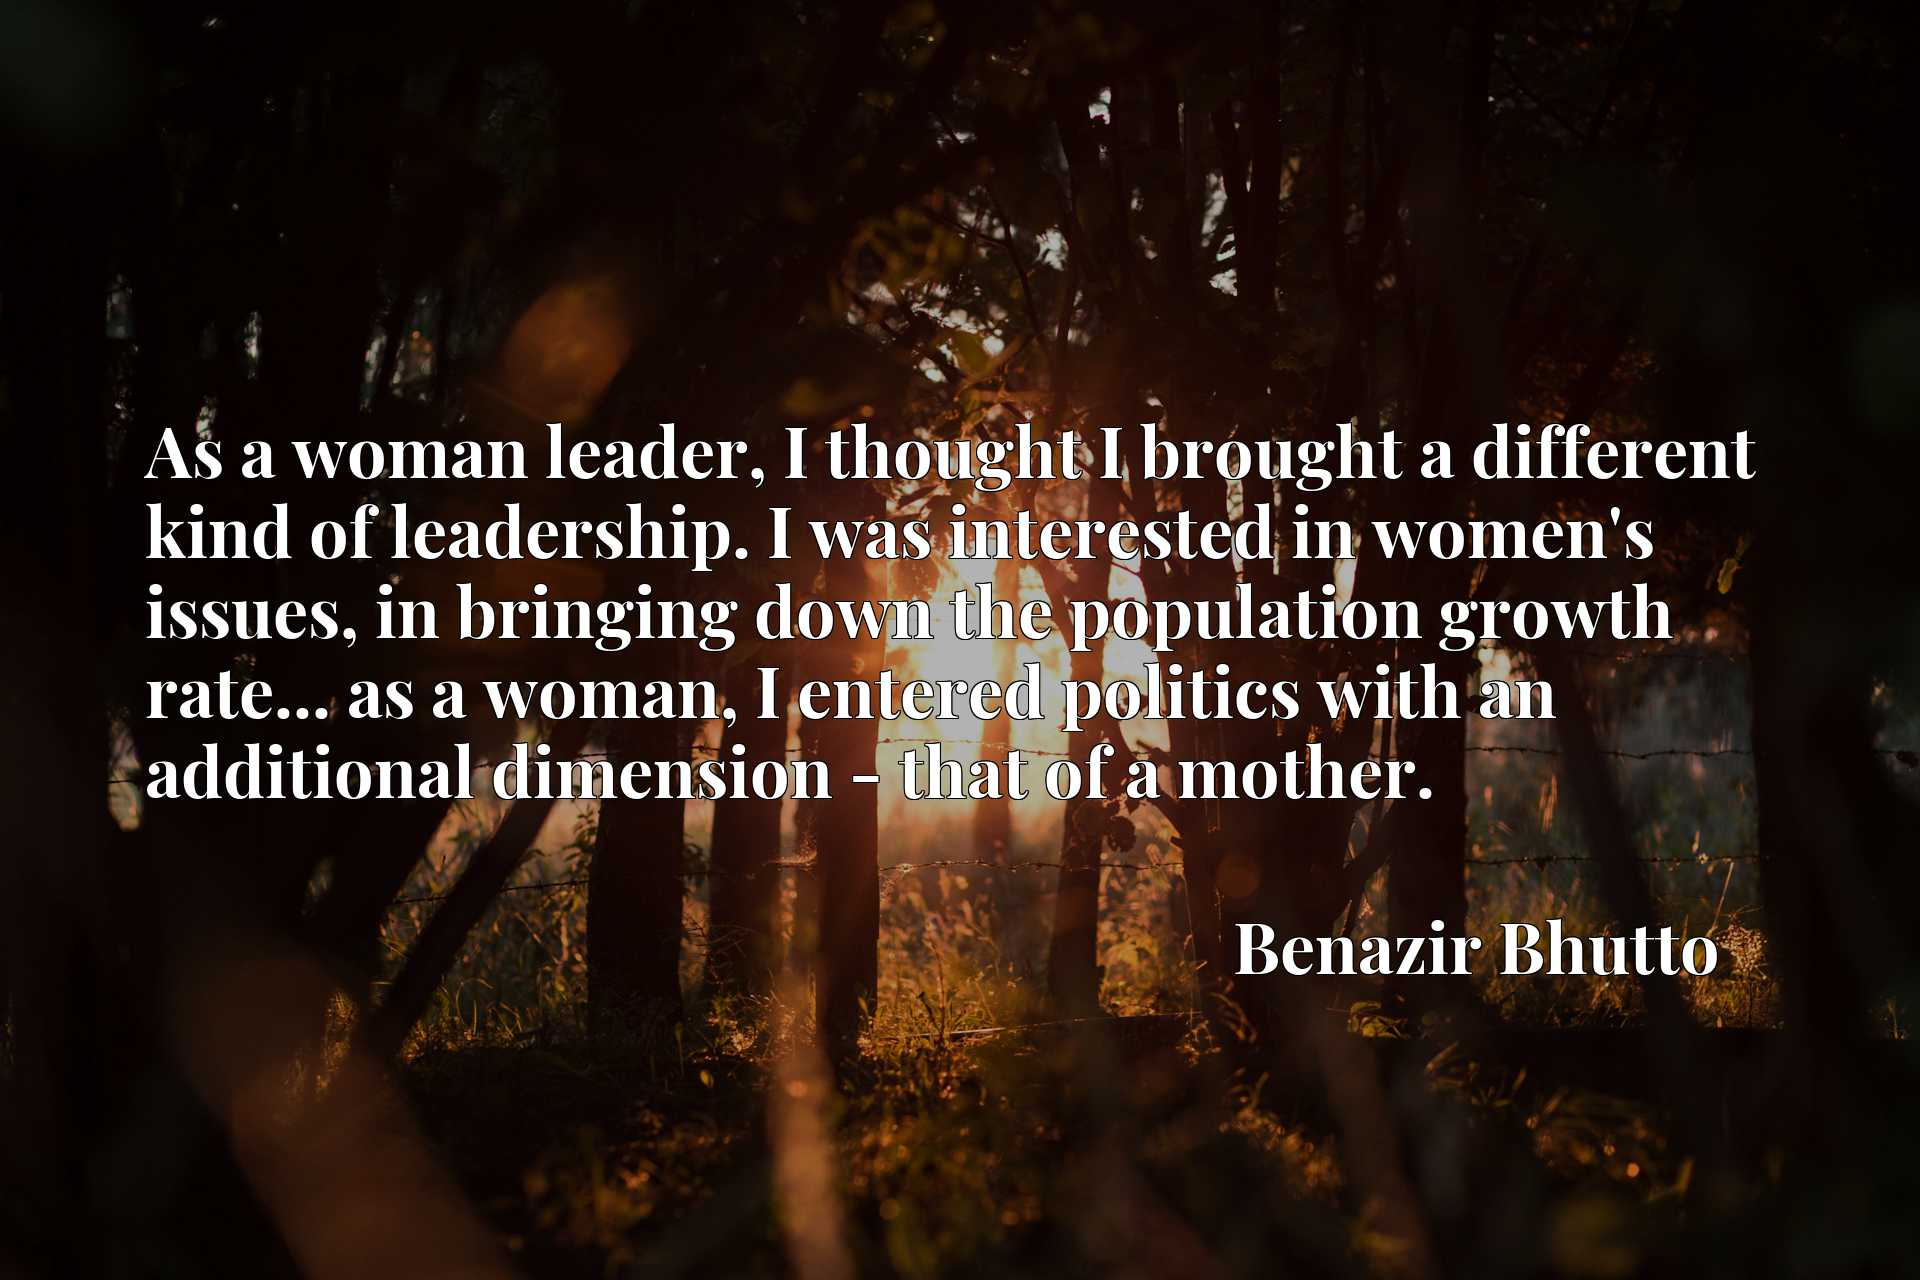 As a woman leader, I thought I brought a different kind of leadership. I was interested in women's issues, in bringing down the population growth rate... as a woman, I entered politics with an additional dimension - that of a mother.